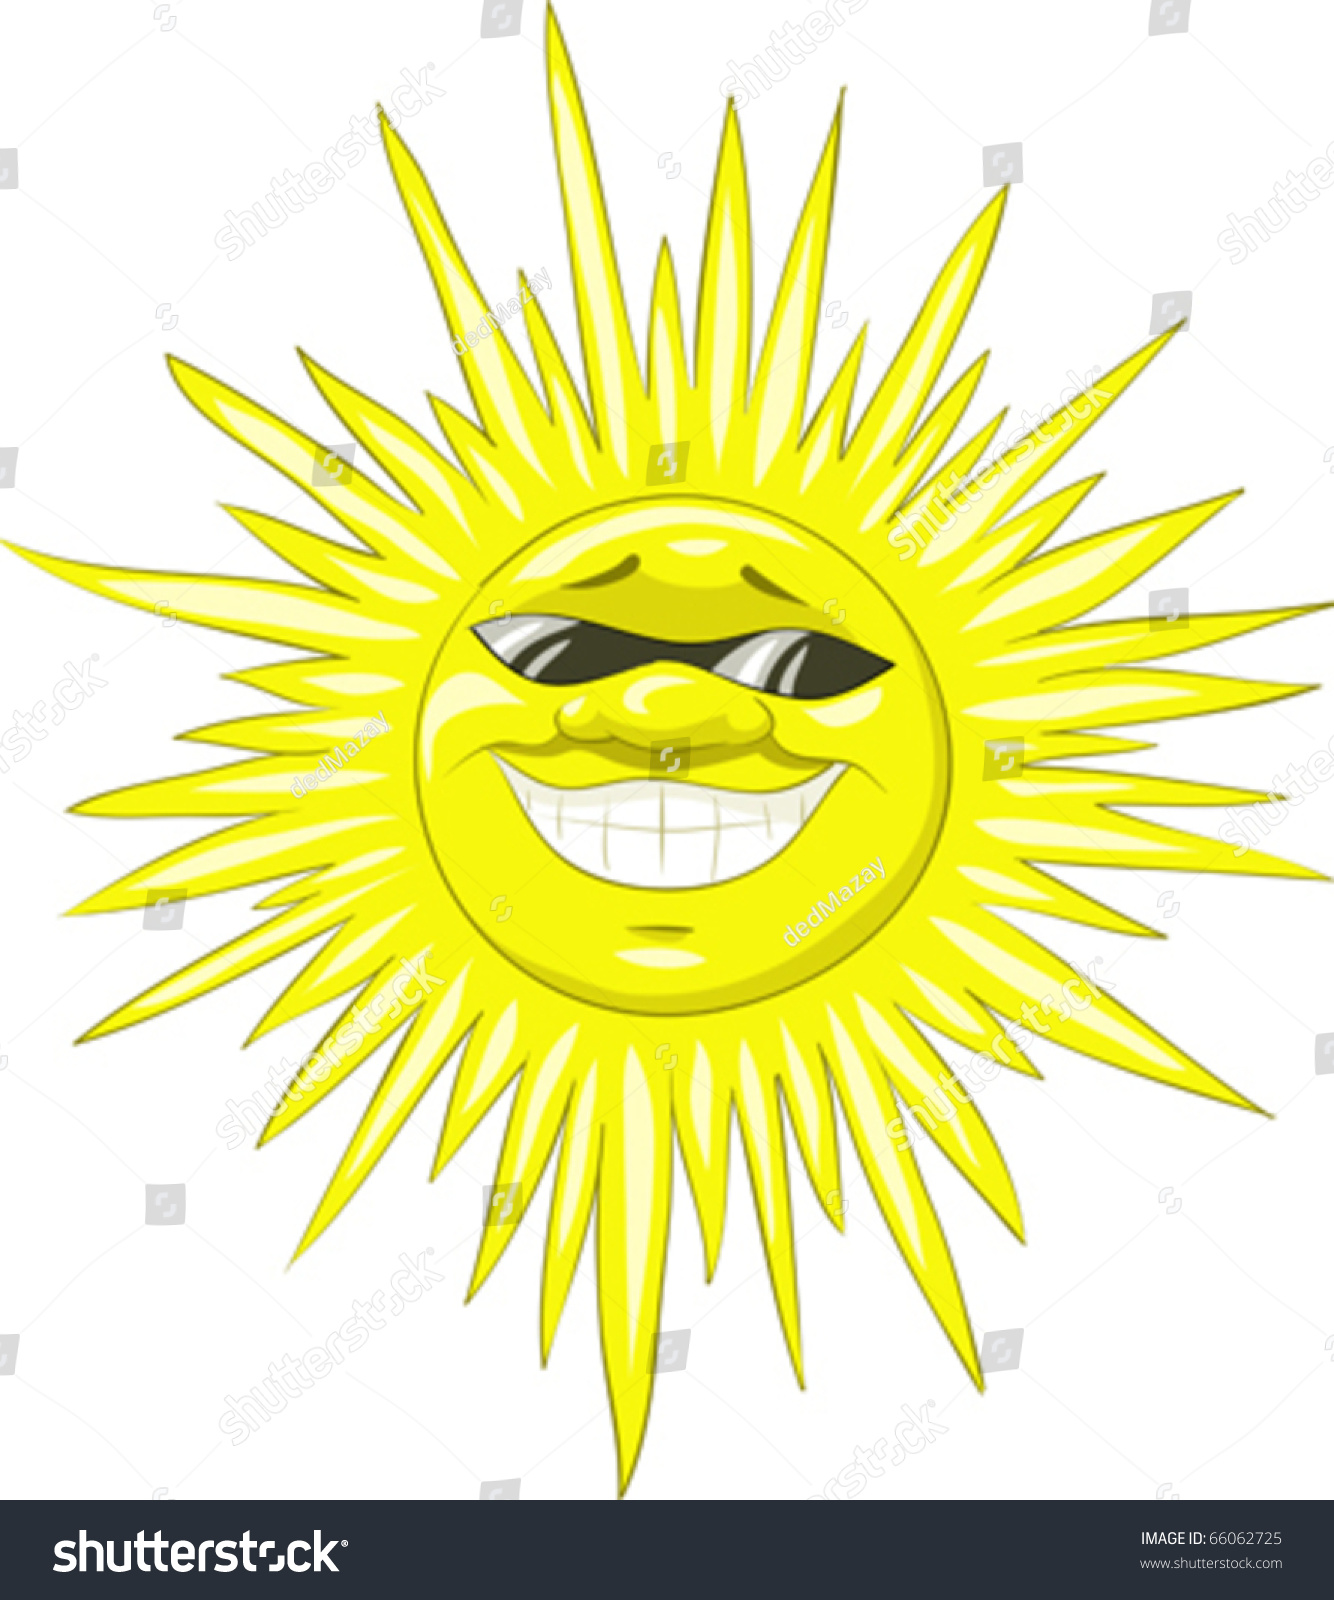 Smiling sun with sunglasses - A Smiling Sun Wearing Sunglasses Vector Illustration